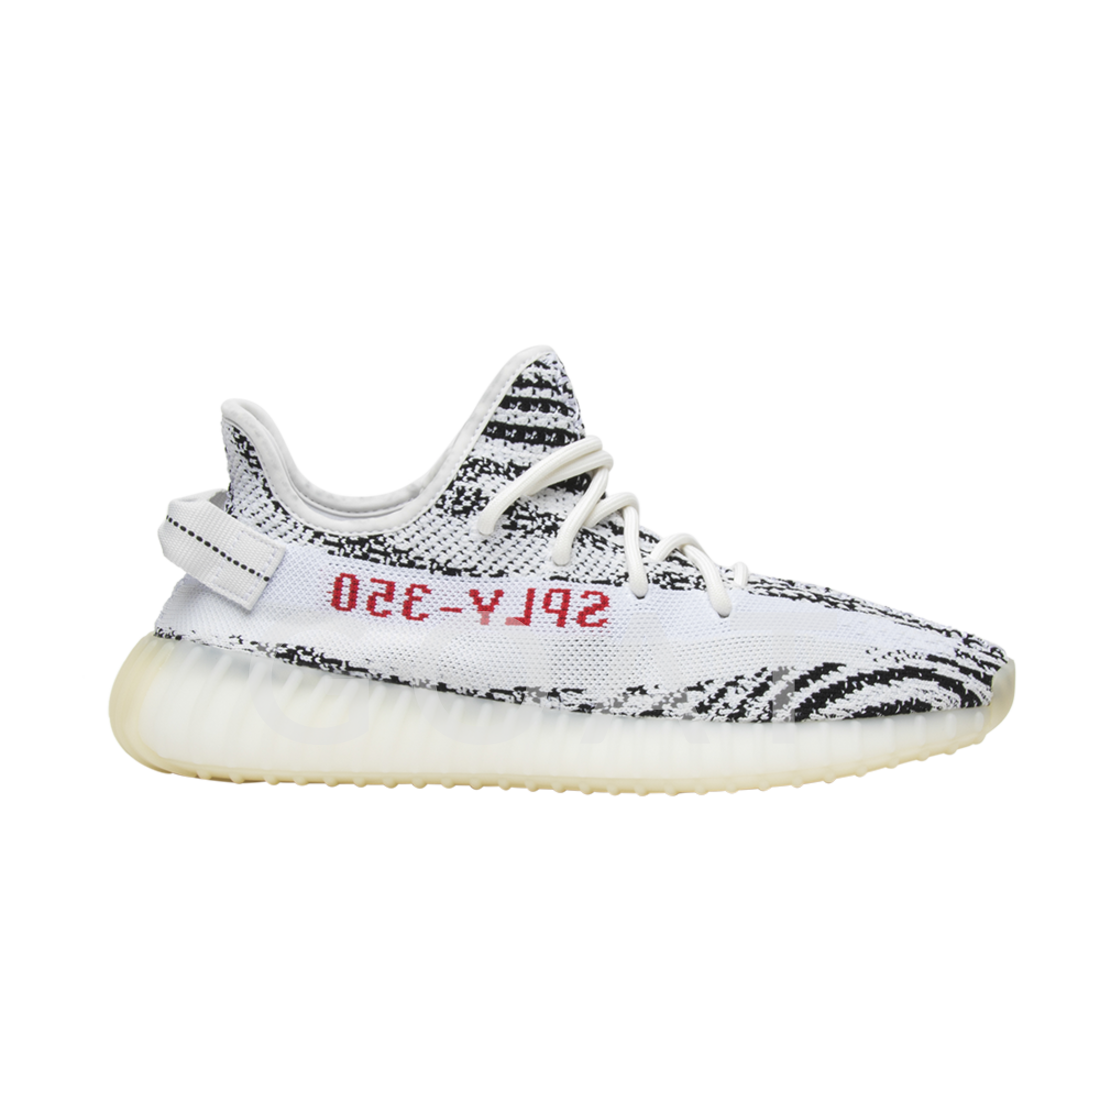 f6c62a1b233 Yeezy Boost 350 V2  Zebra  - Adidas - CP9654 - white core black red